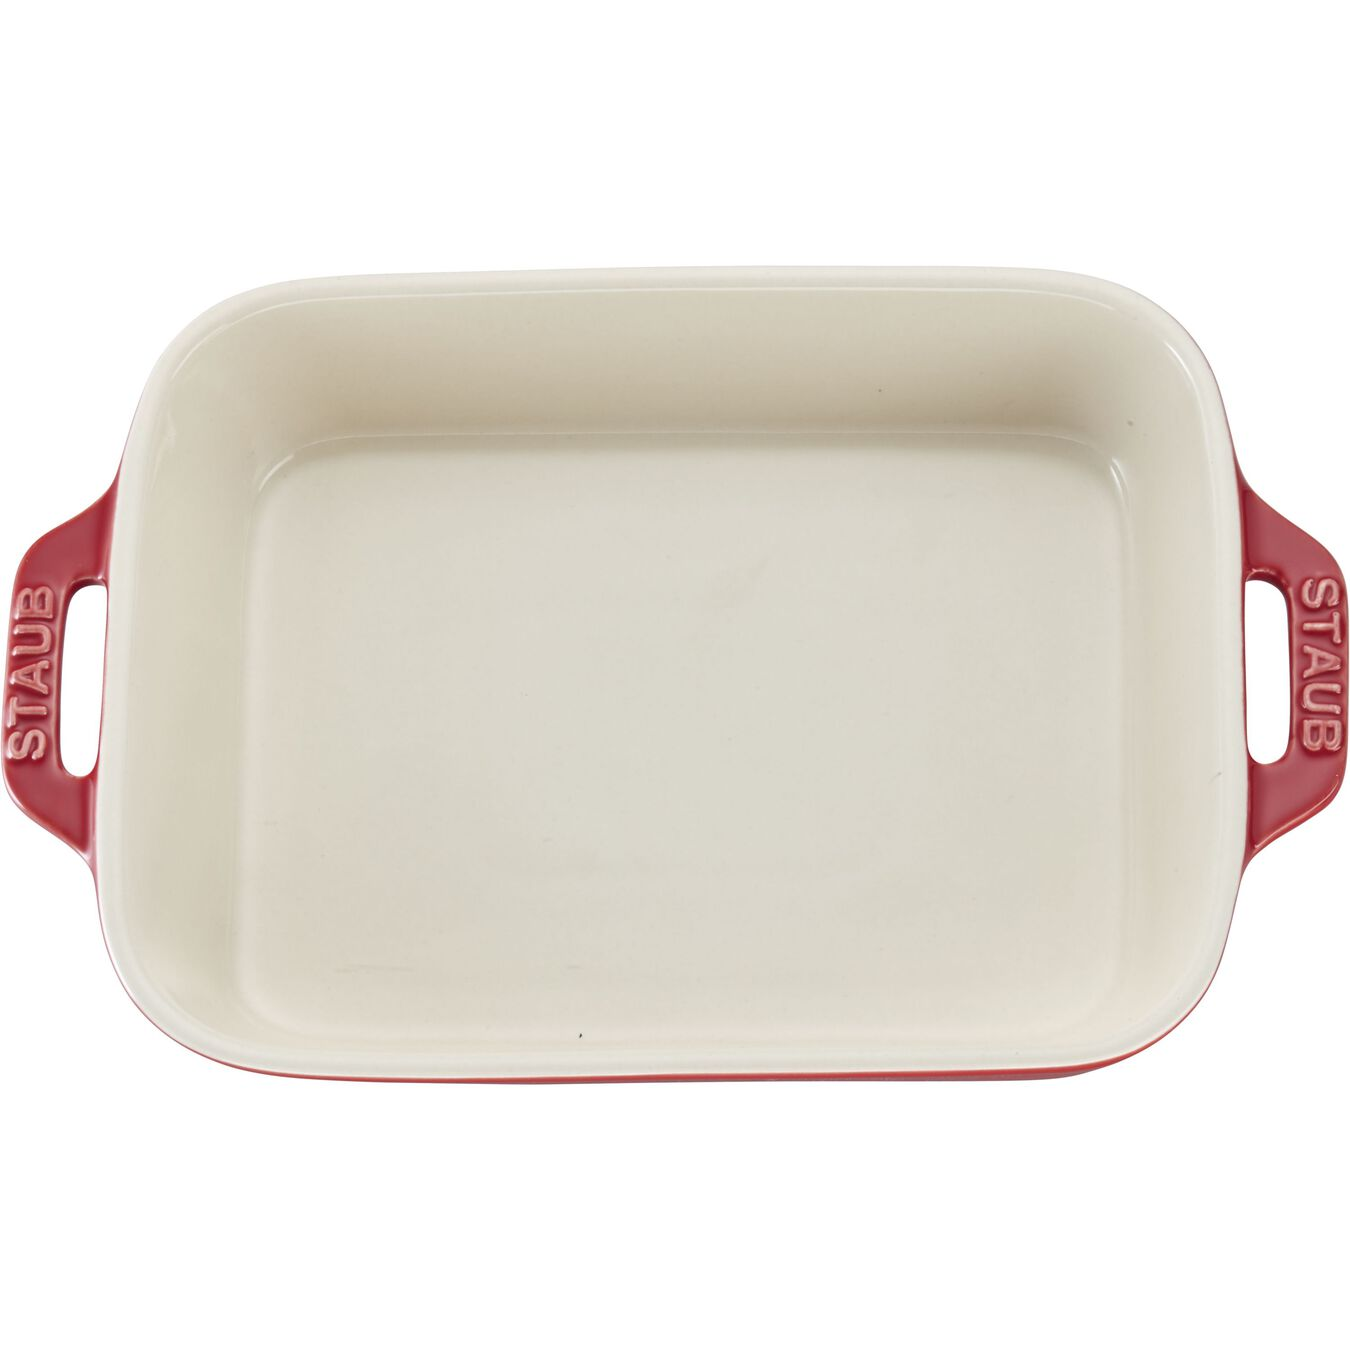 8-inch, rectangular, Special shape bakeware, cherry,,large 2